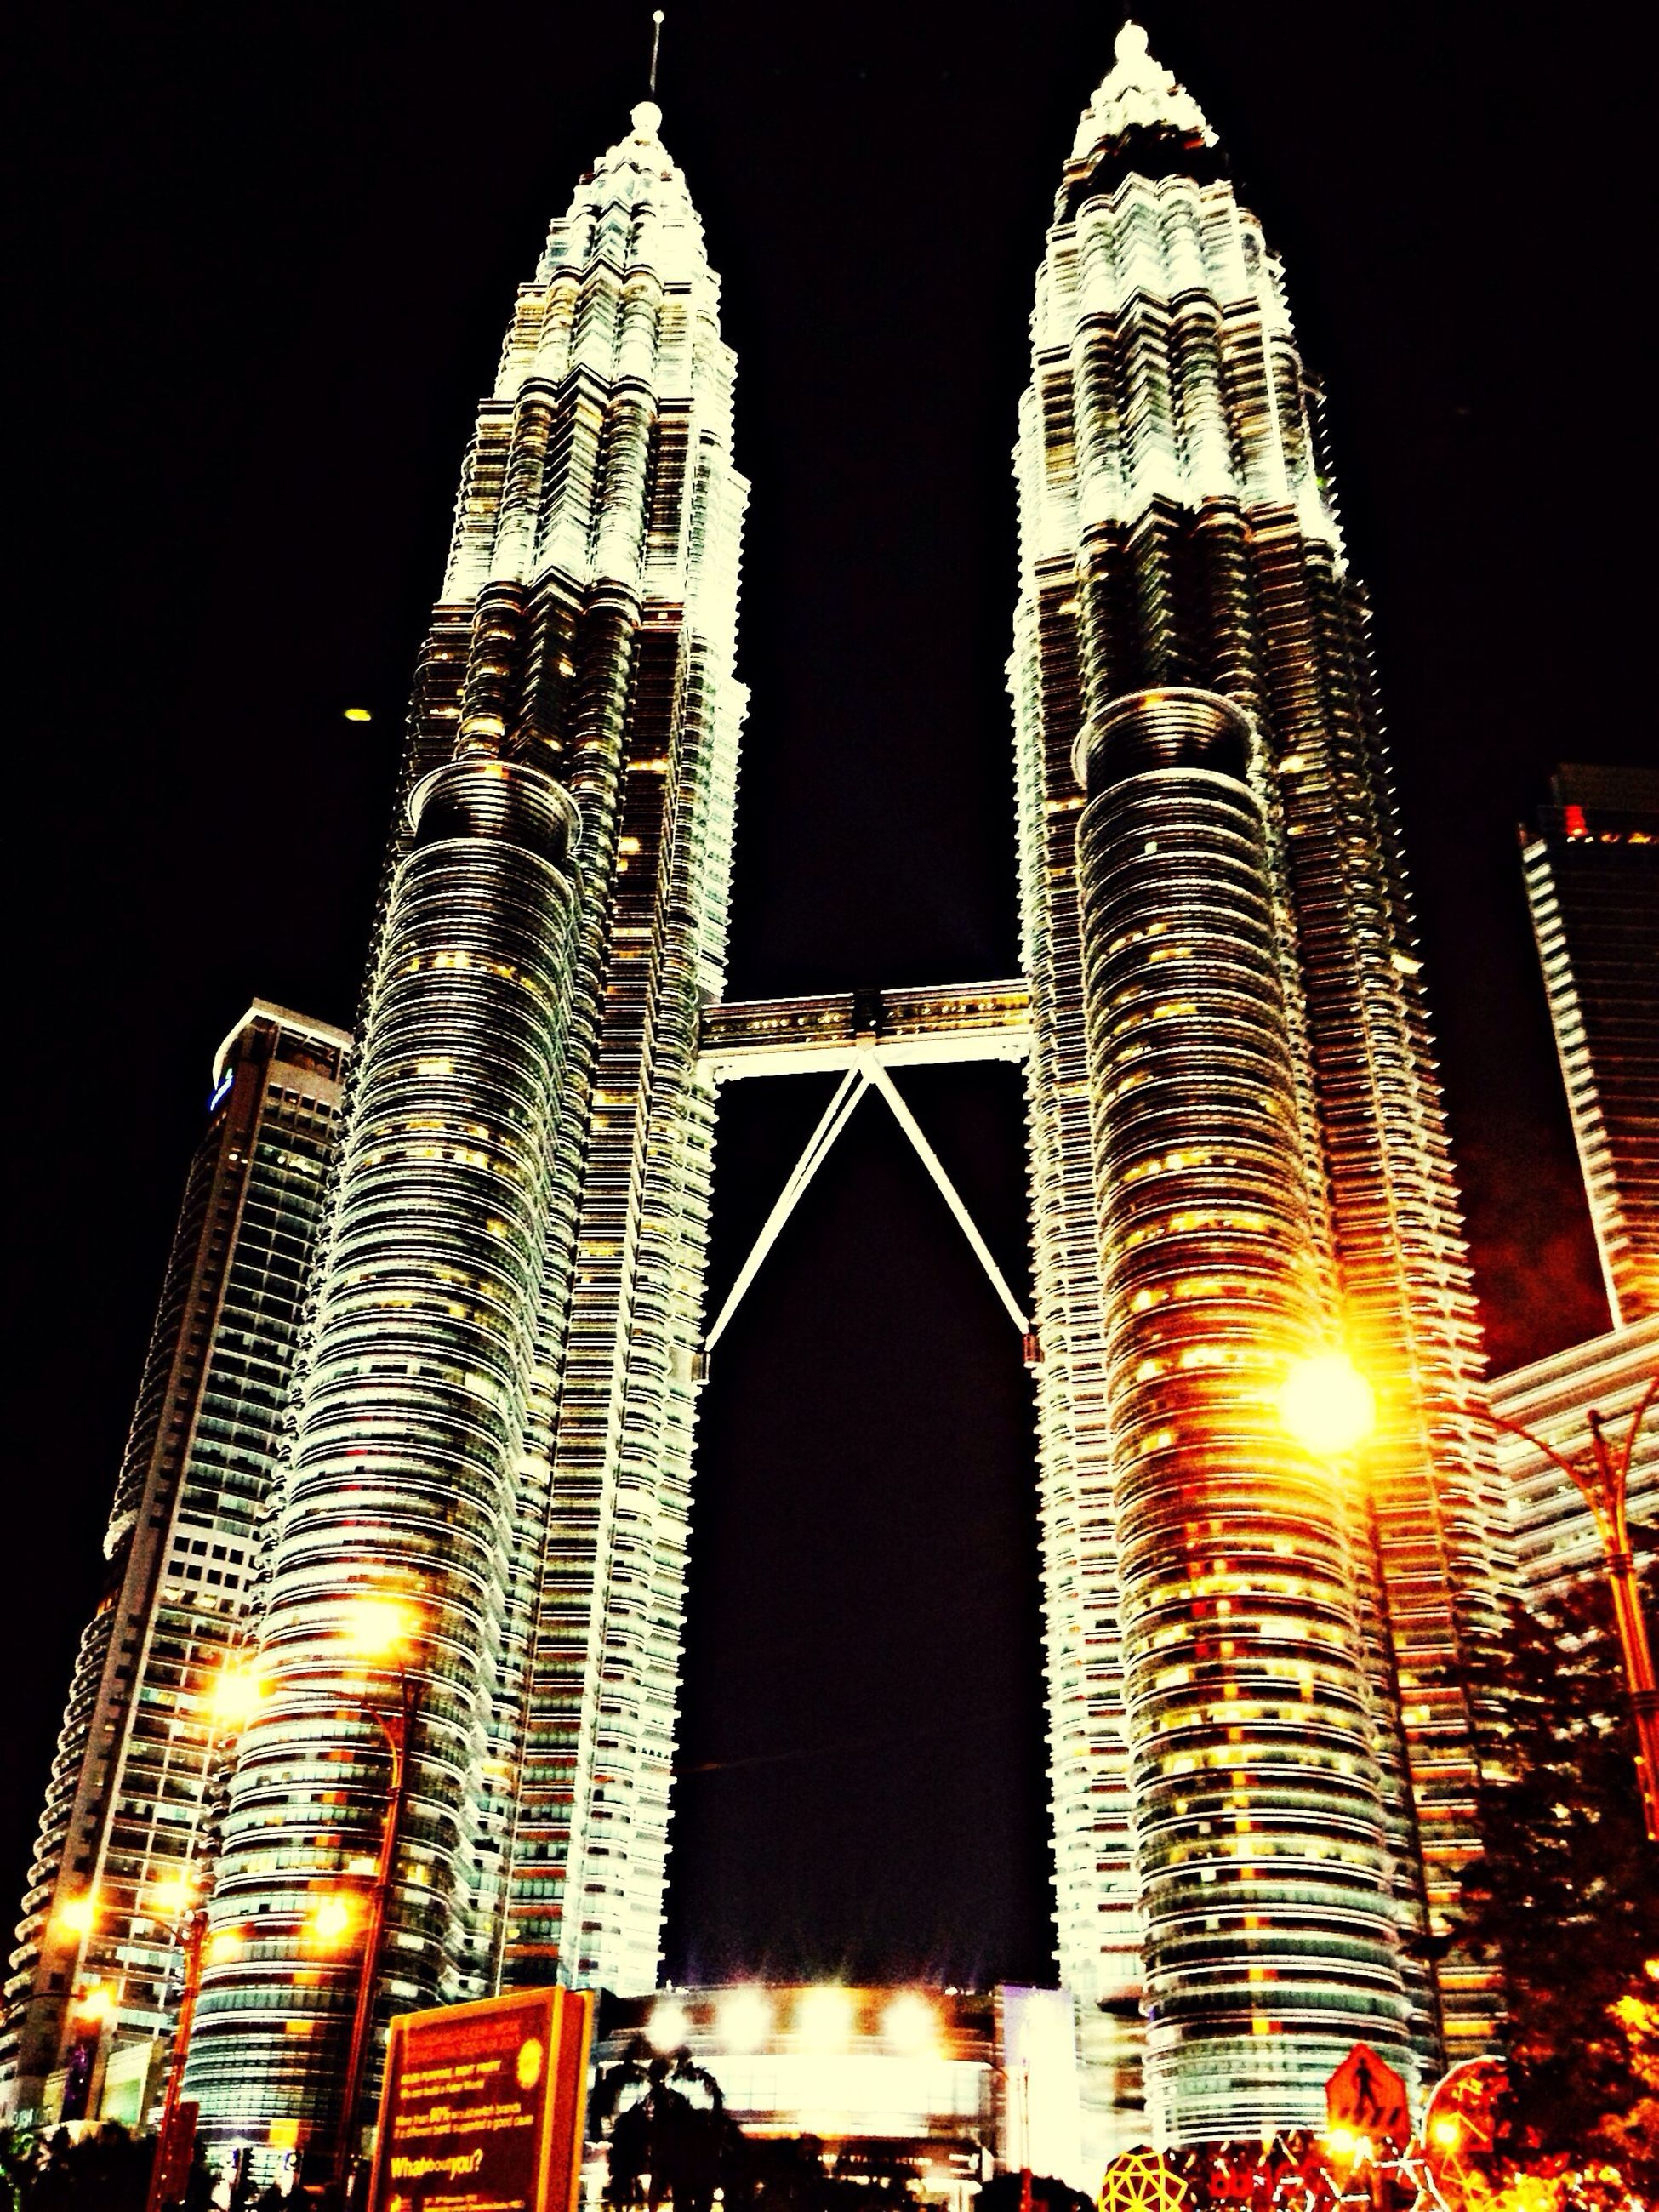 building exterior, architecture, built structure, illuminated, skyscraper, tall - high, city, tower, night, low angle view, famous place, international landmark, travel destinations, modern, capital cities, tourism, office building, travel, spire, clear sky